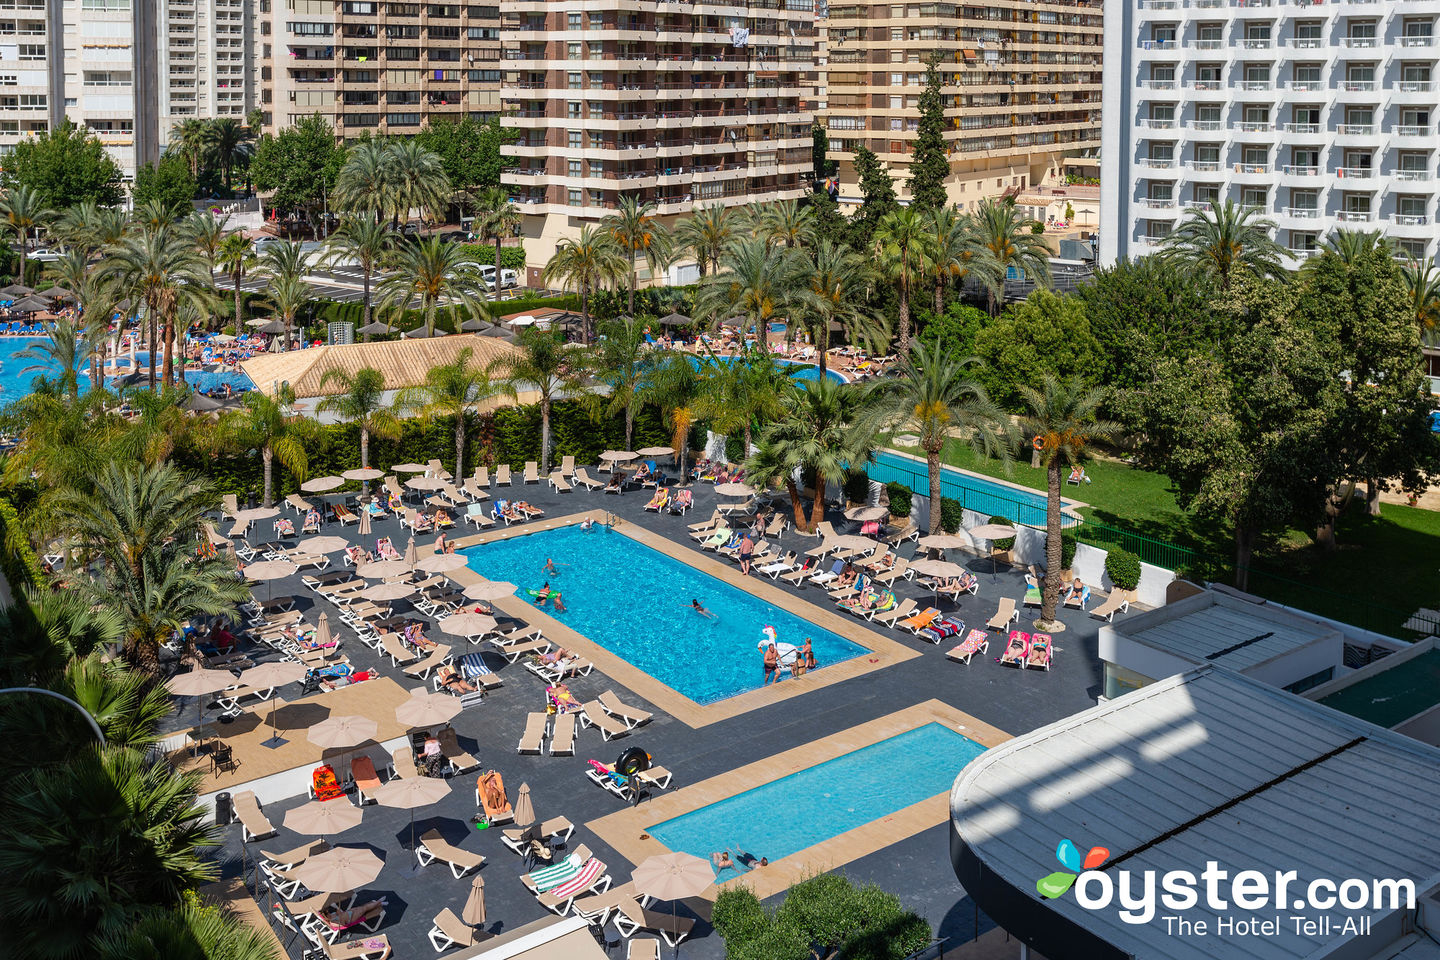 Flash Hotel Benidorm Review: What To Really Expect If You Stay avec Piscine Plein Ciel Valence